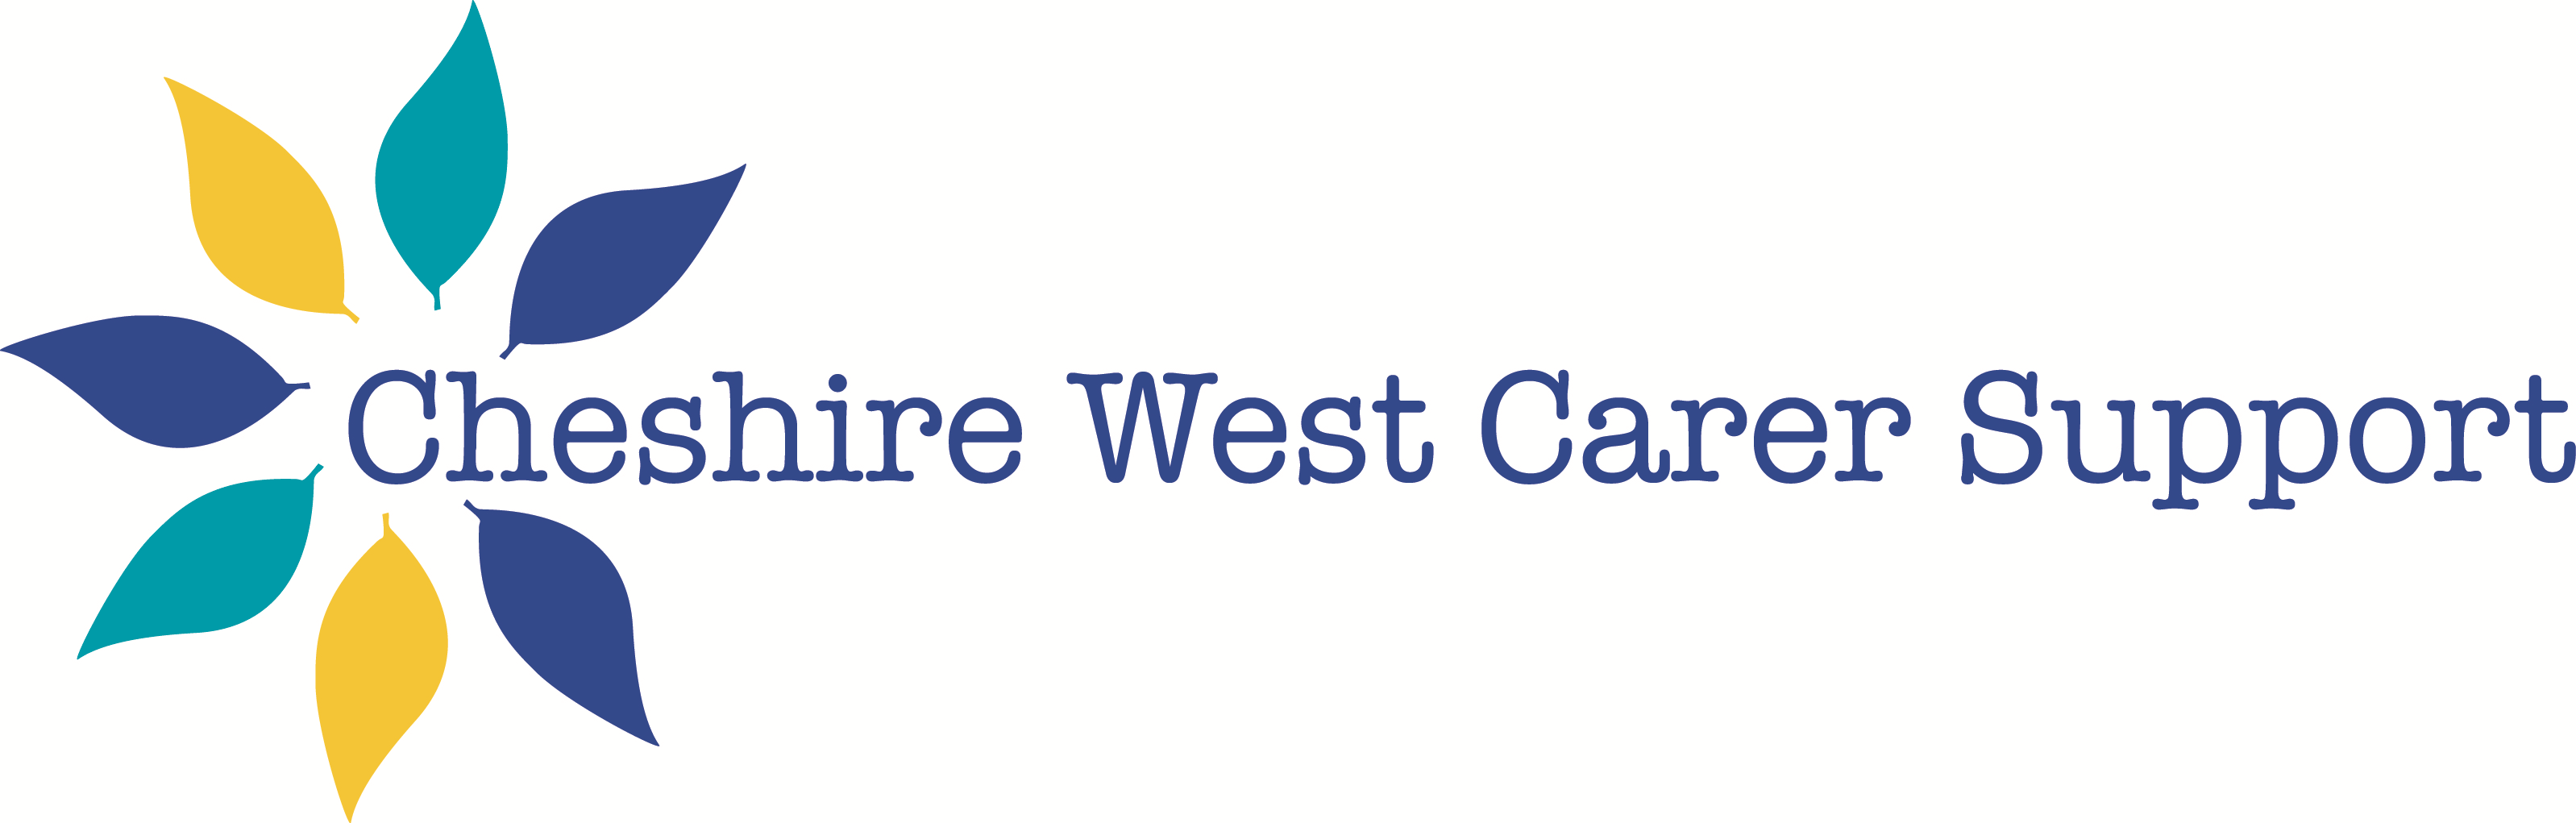 Cheshire West Carer Support